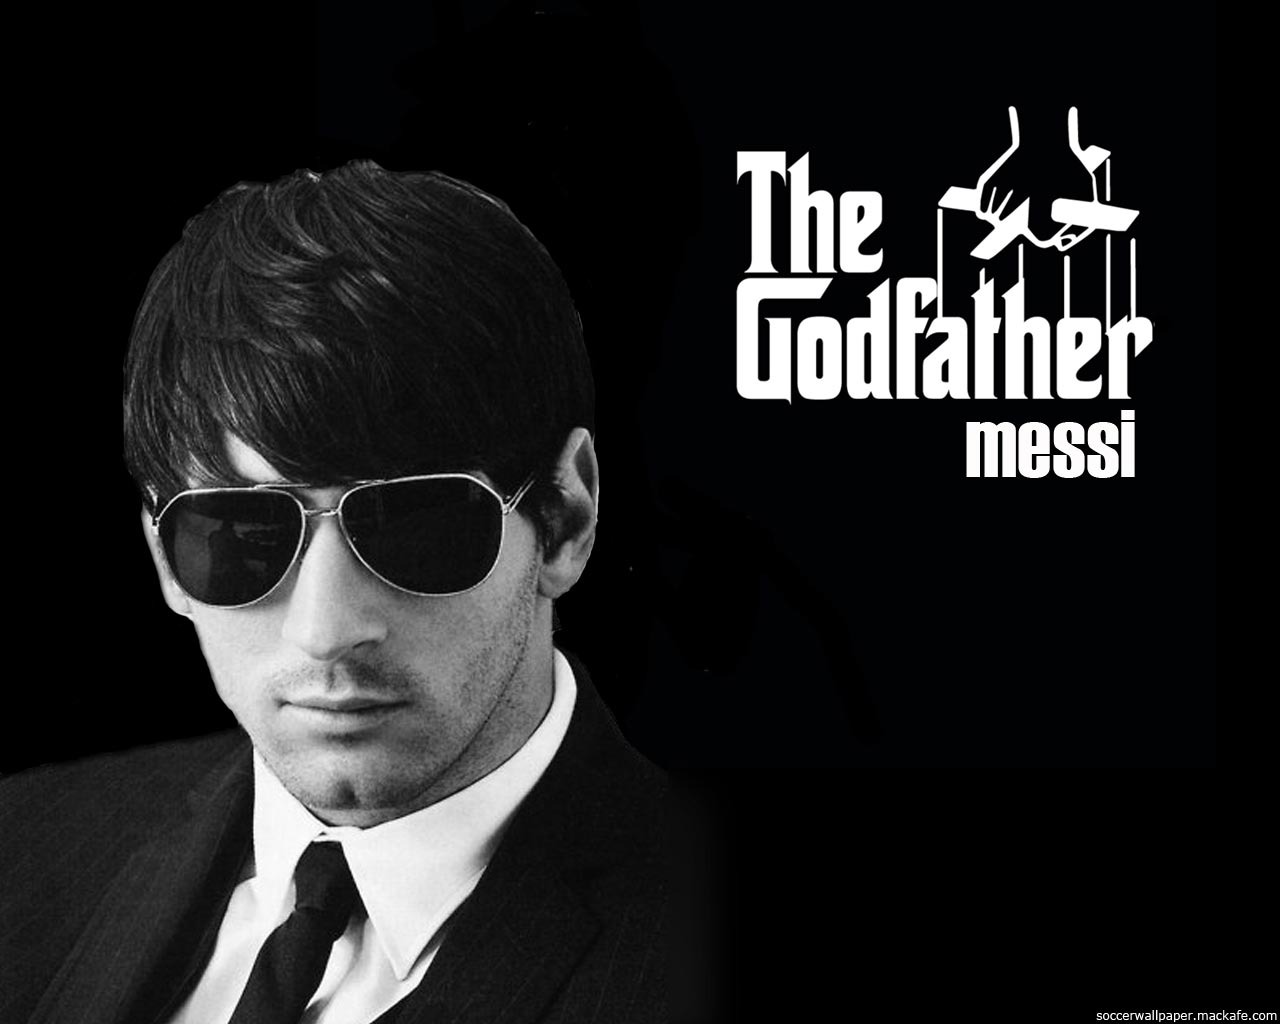 Lionel Messi wallpaper, the godfather evading taxes